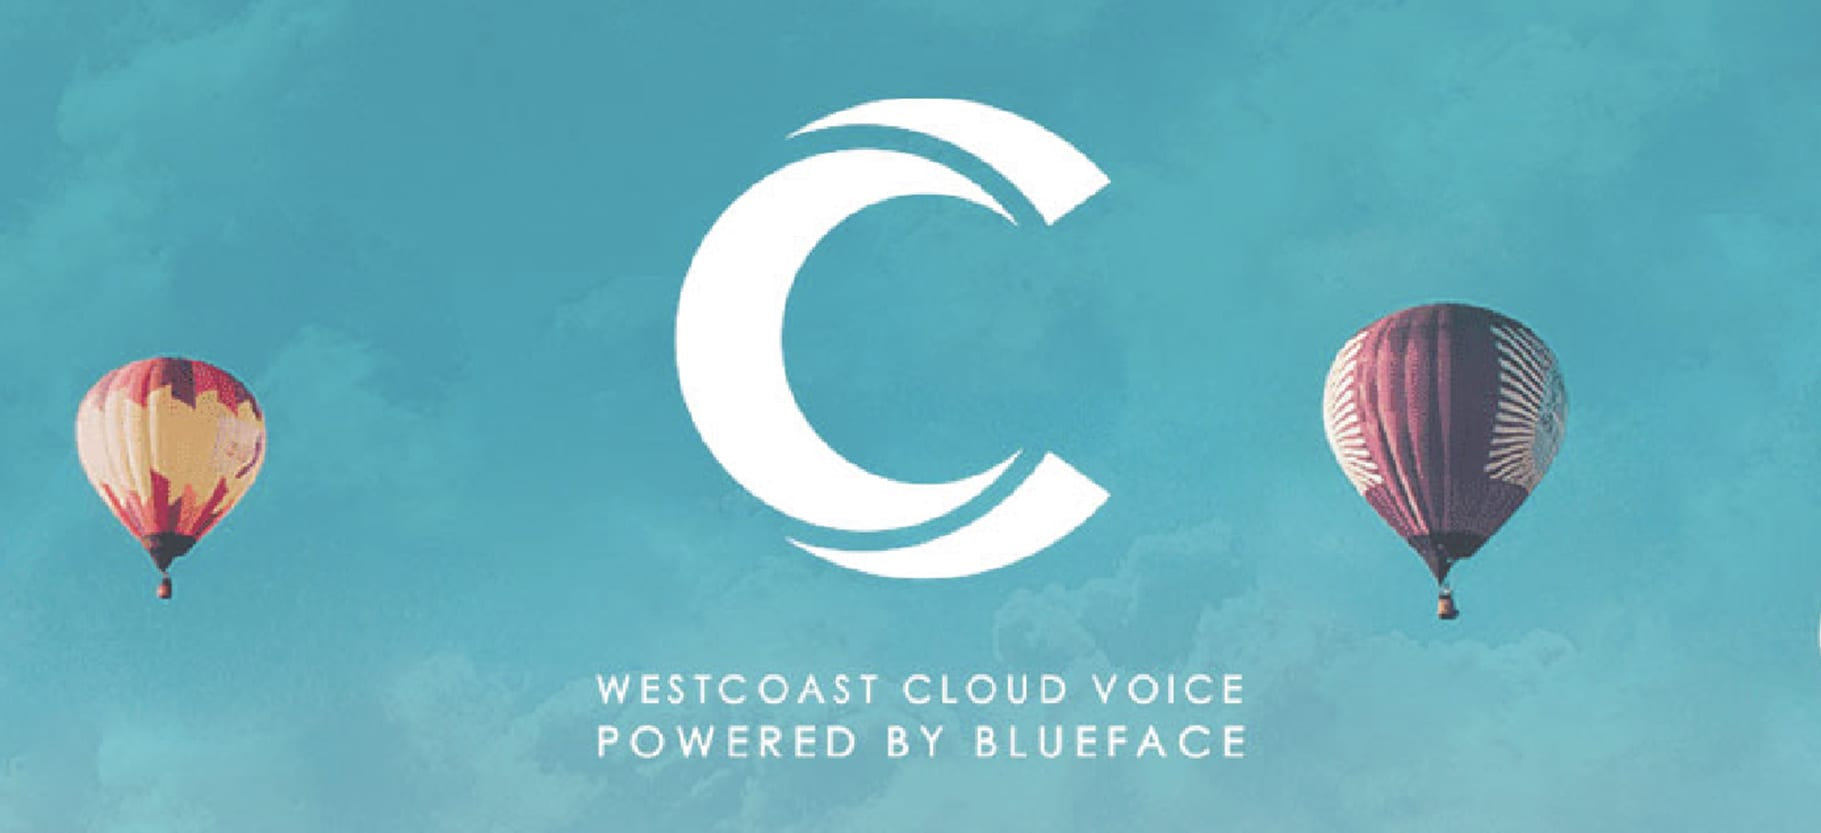 Westcoast Cloud Voice, Powered by Blueface